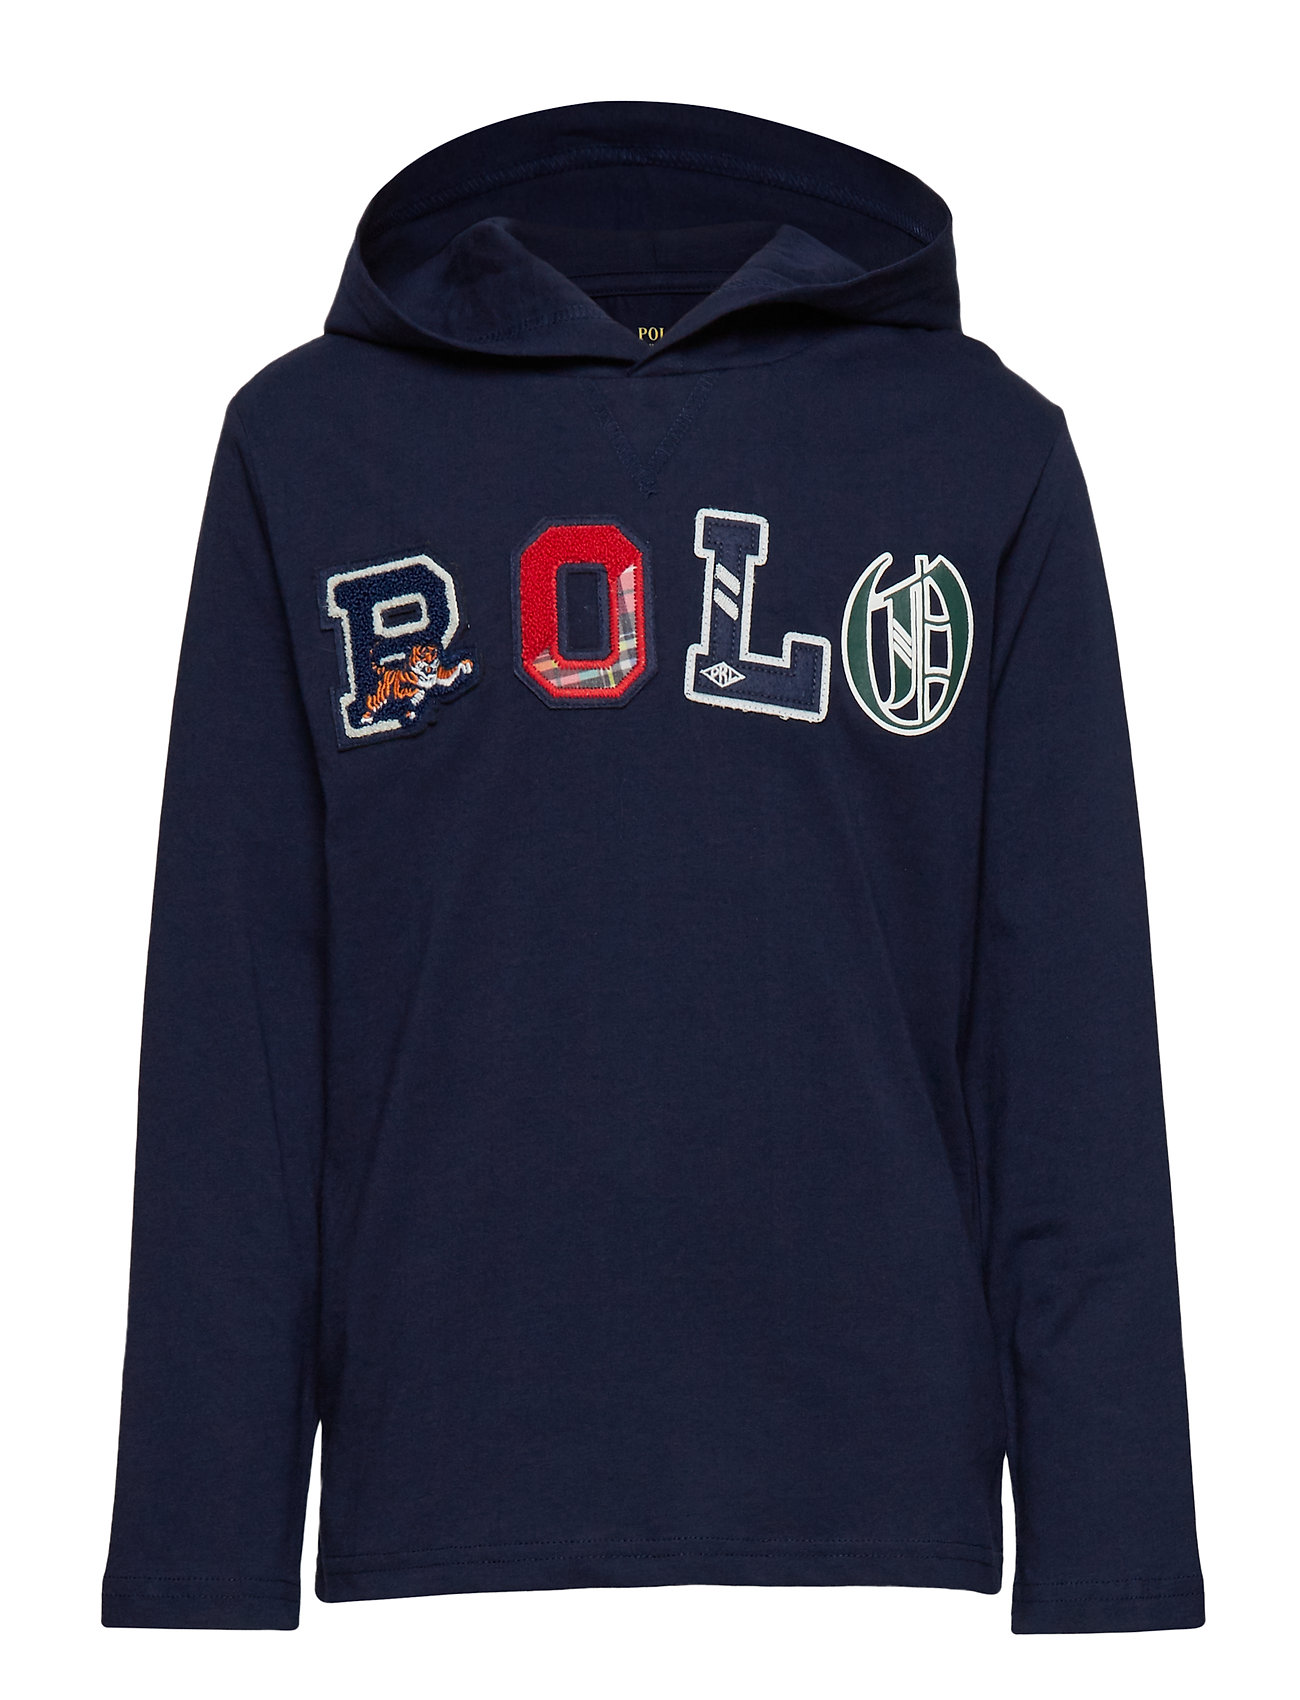 Ralph Lauren Kids Cotton Graphic Hooded Tee - FRENCH NAVY